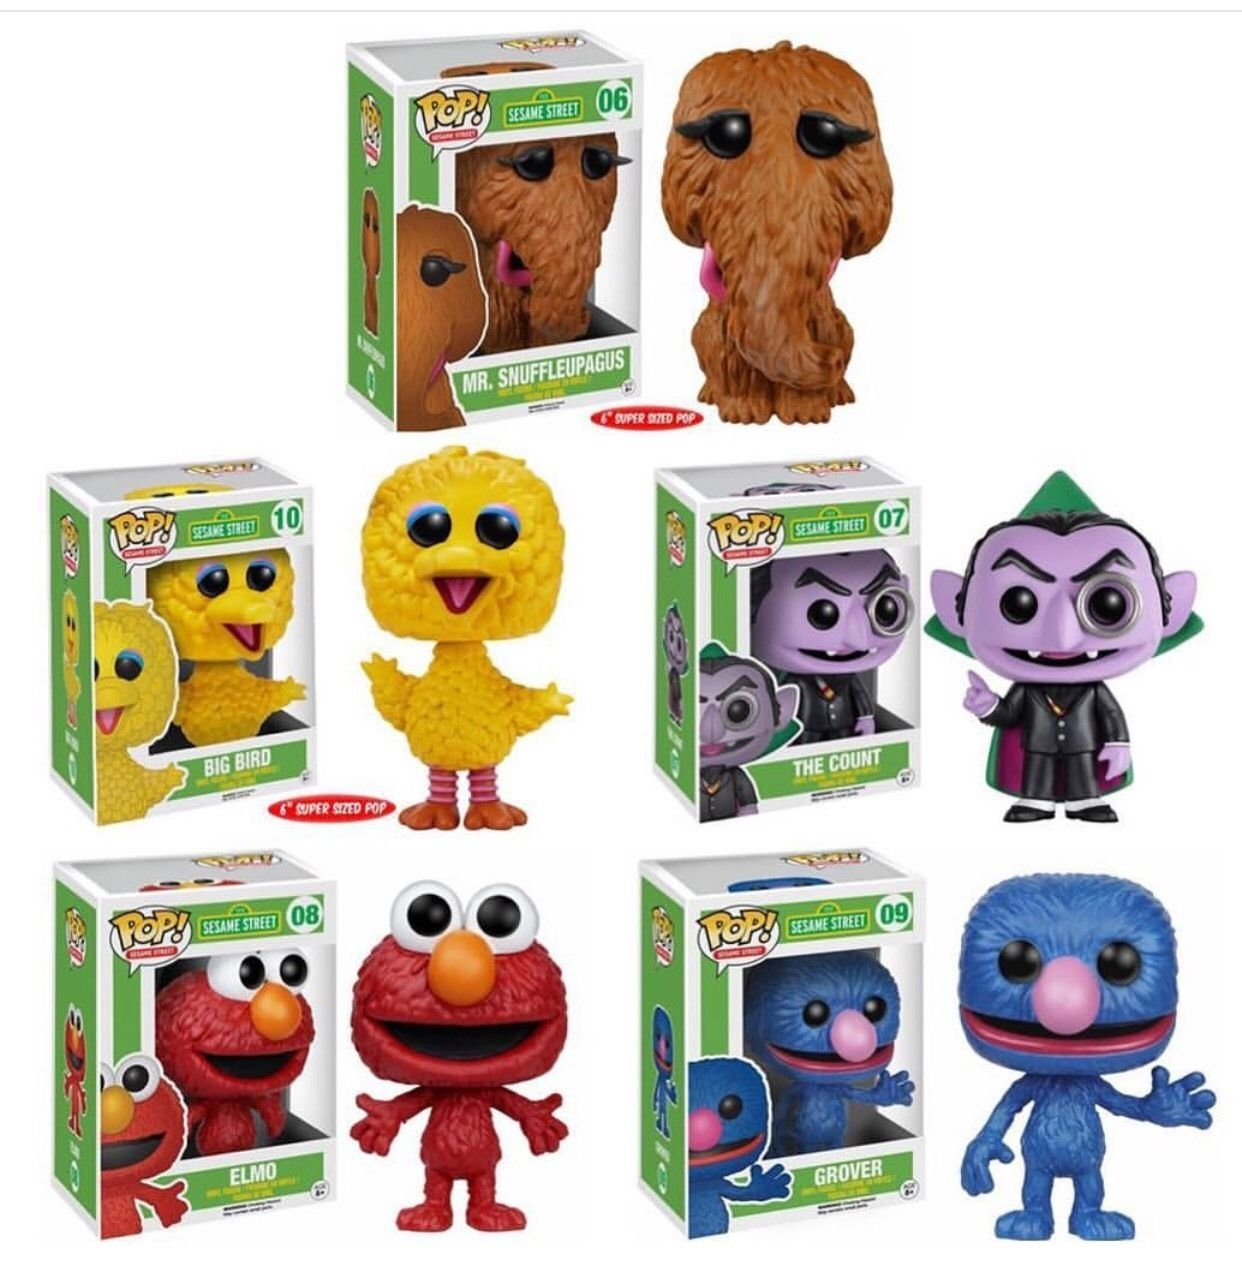 The Count Elmo Grover Big Bird Snuffleupagus Wave 2 Funko Pop TV Sesame Street (Collector Set of 5) Vinyl... by